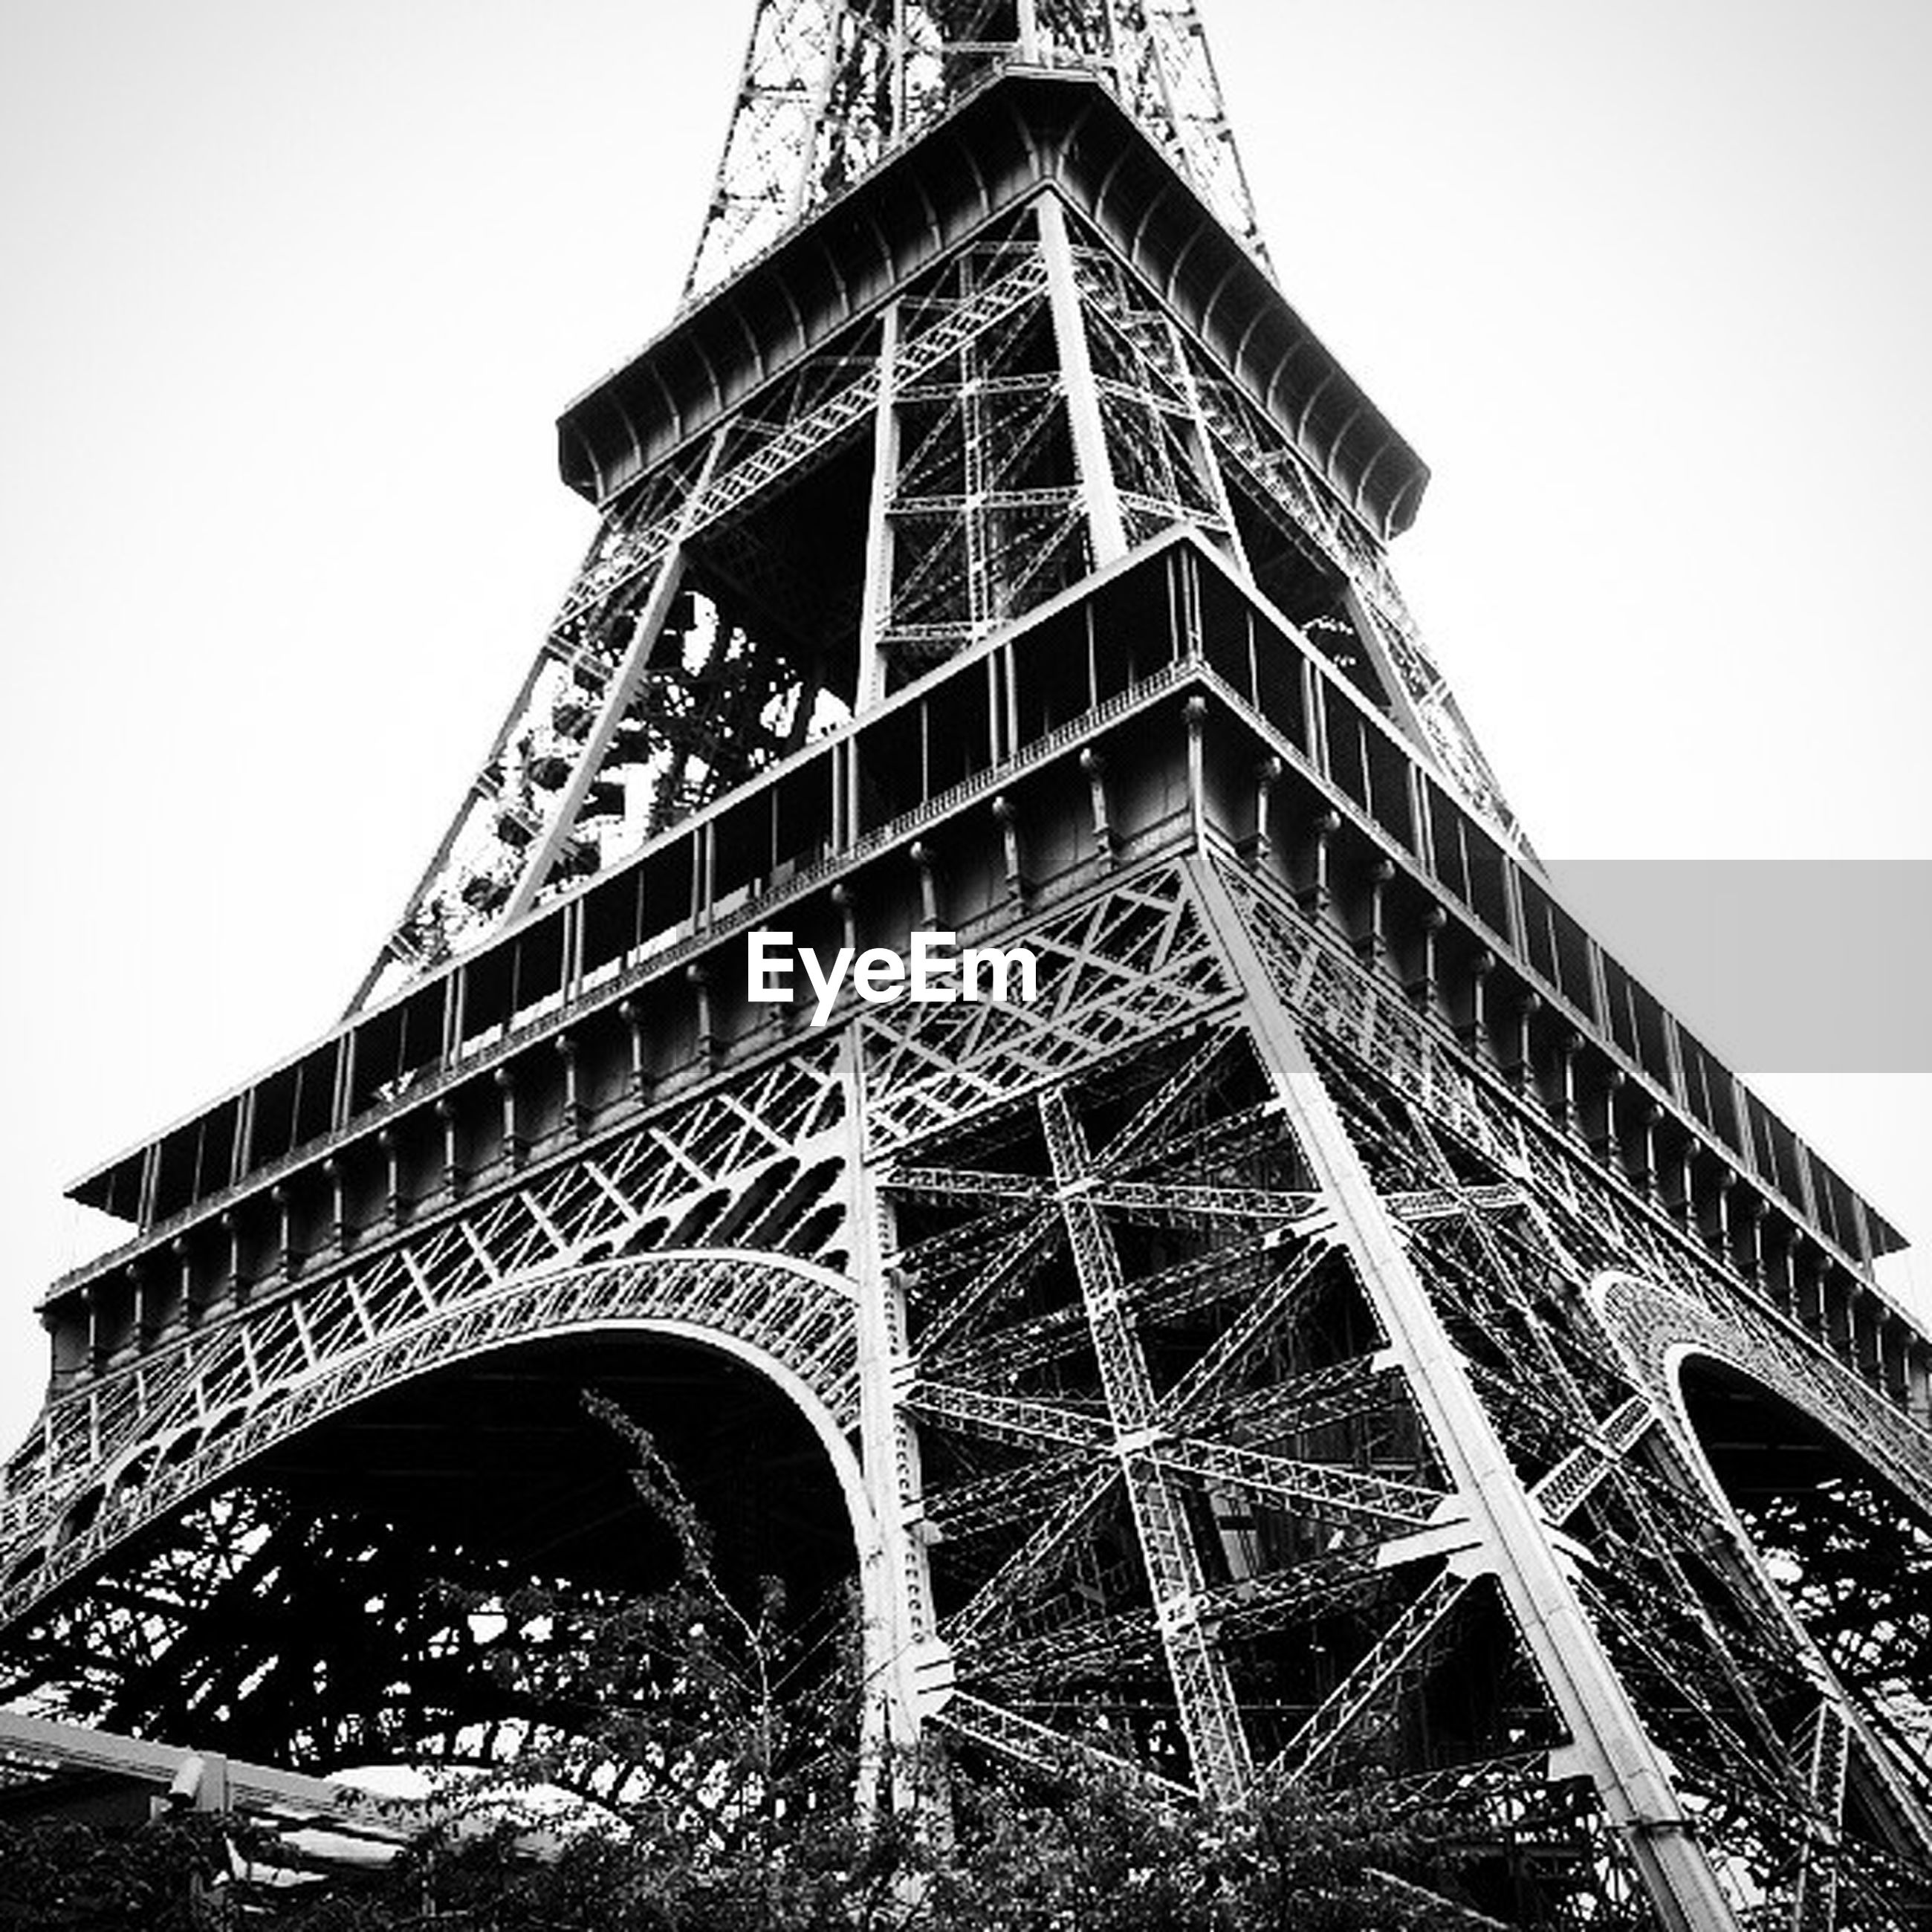 clear sky, low angle view, architecture, built structure, international landmark, famous place, eiffel tower, tower, travel destinations, tourism, capital cities, travel, tall - high, history, metal, culture, architectural feature, engineering, copy space, day